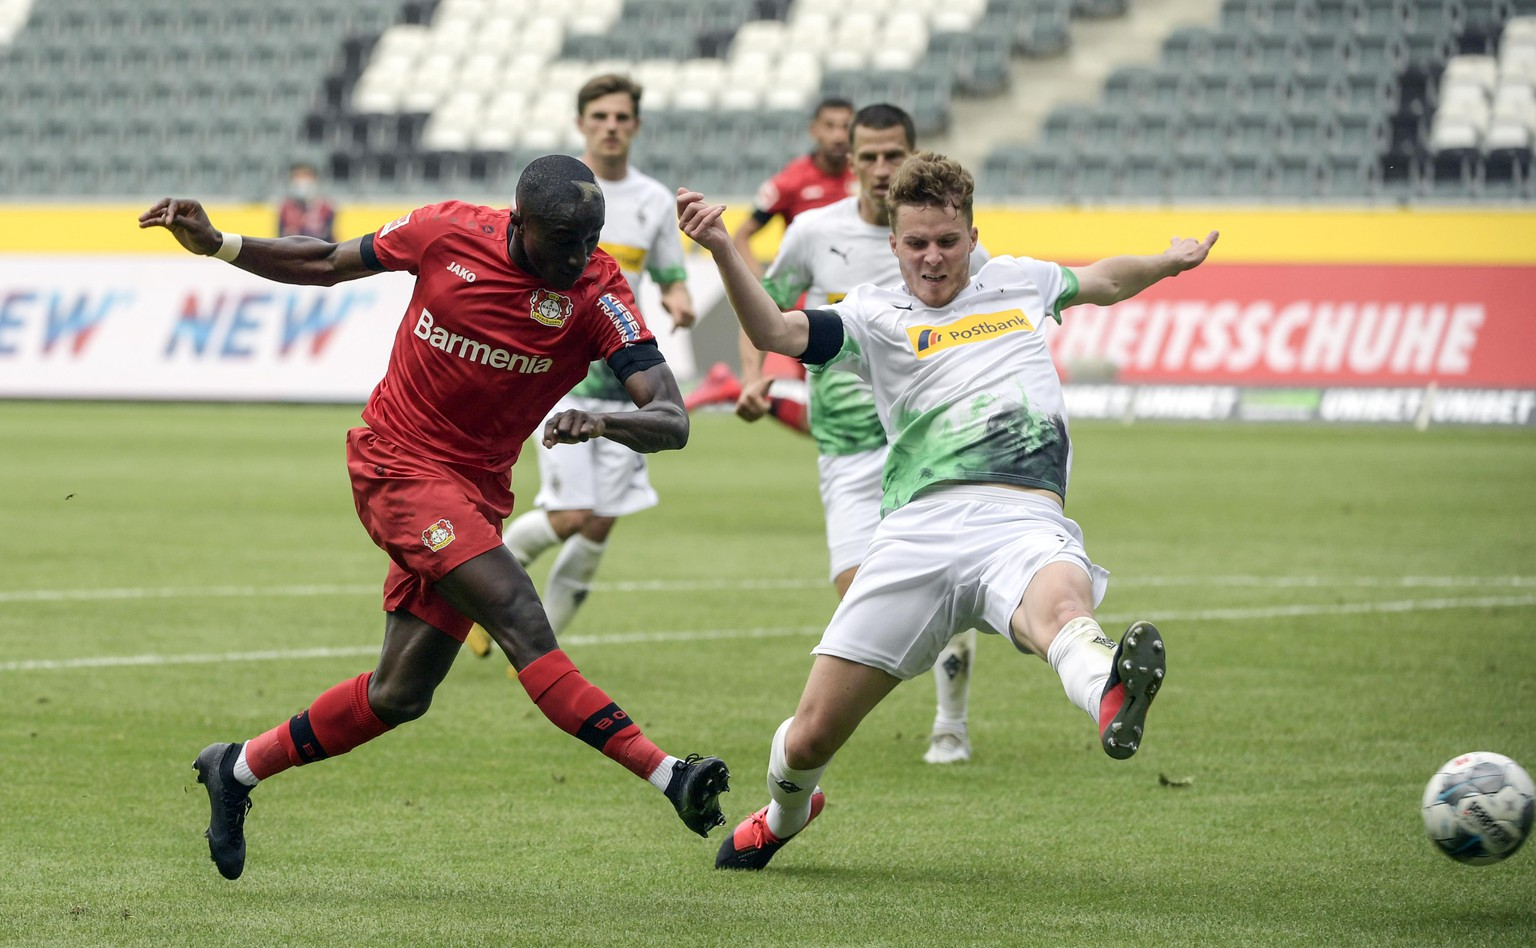 Leverkusen's French forward Moussa Diaby, left, and Moenchengladbach's Swiss defender Nico Elvedi vie for the ball during the German Bundesliga soccer match between Borussia Moenchengladbach and Leverkusen, in Moenchengladbach, Germany, Saturday, May 23, 2020. (Ina Fassbender Pool Photo via AP)